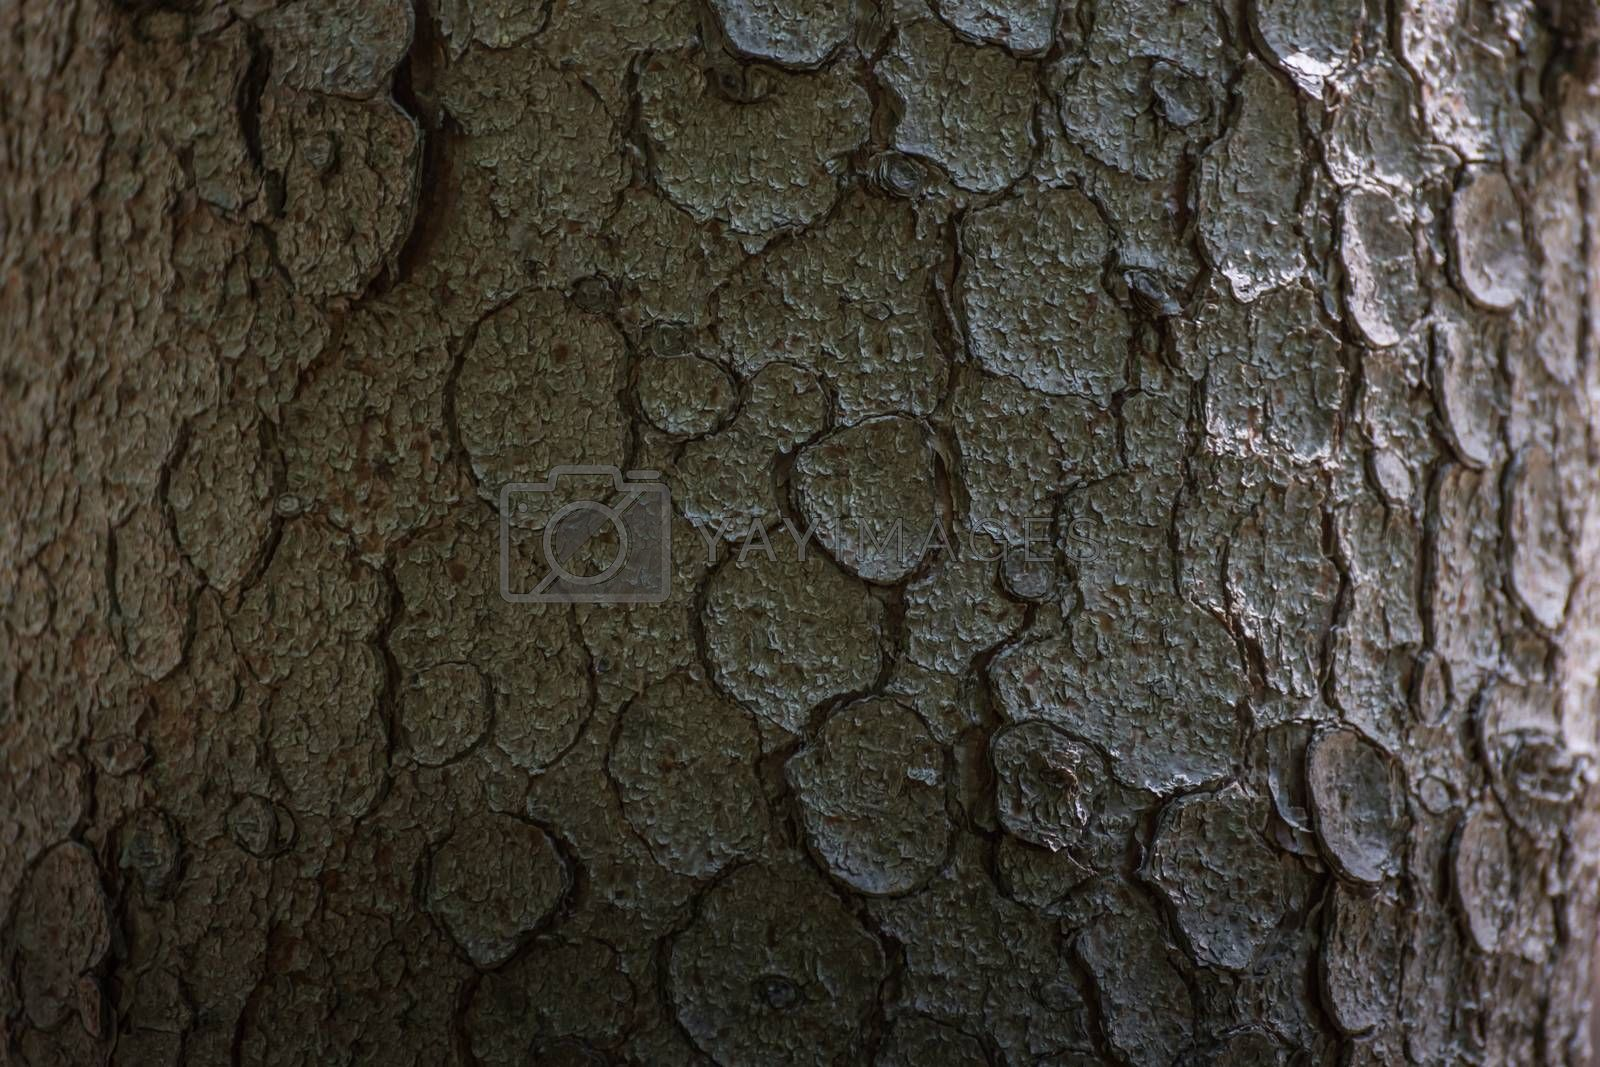 Tree bark structure in the forest detailed view